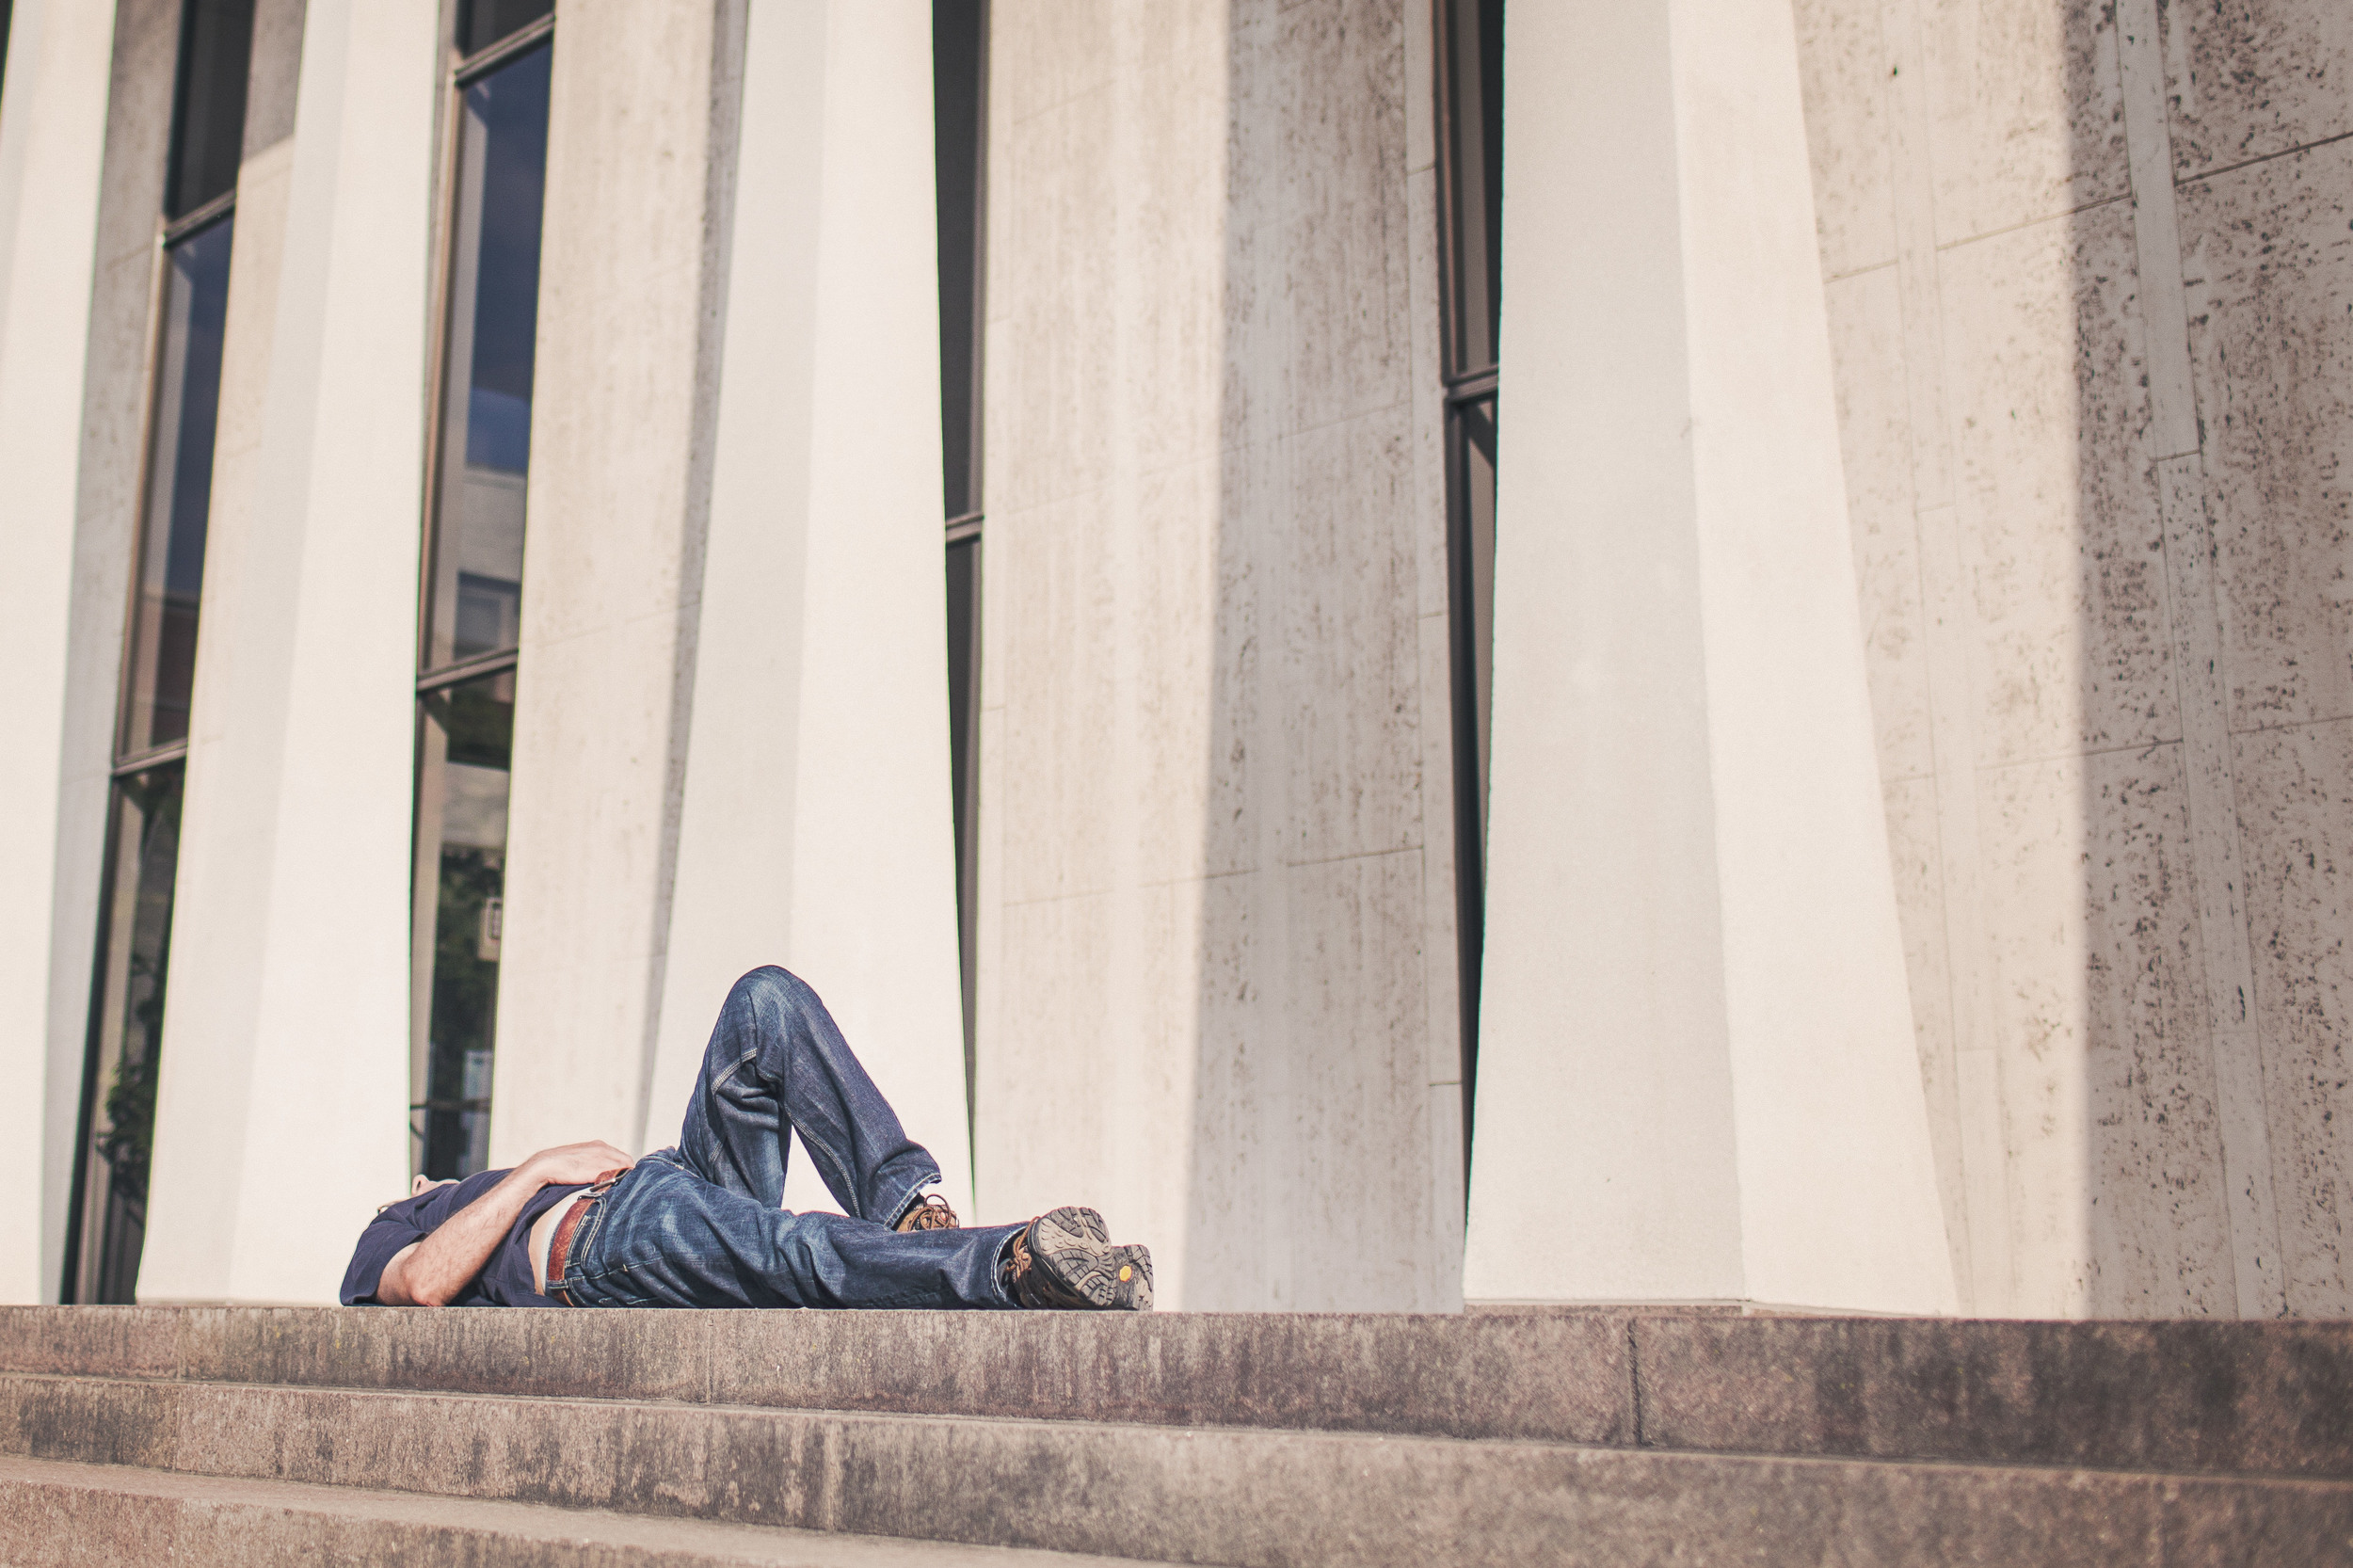 Get enough sleep so you don't wake up on the side of the street.